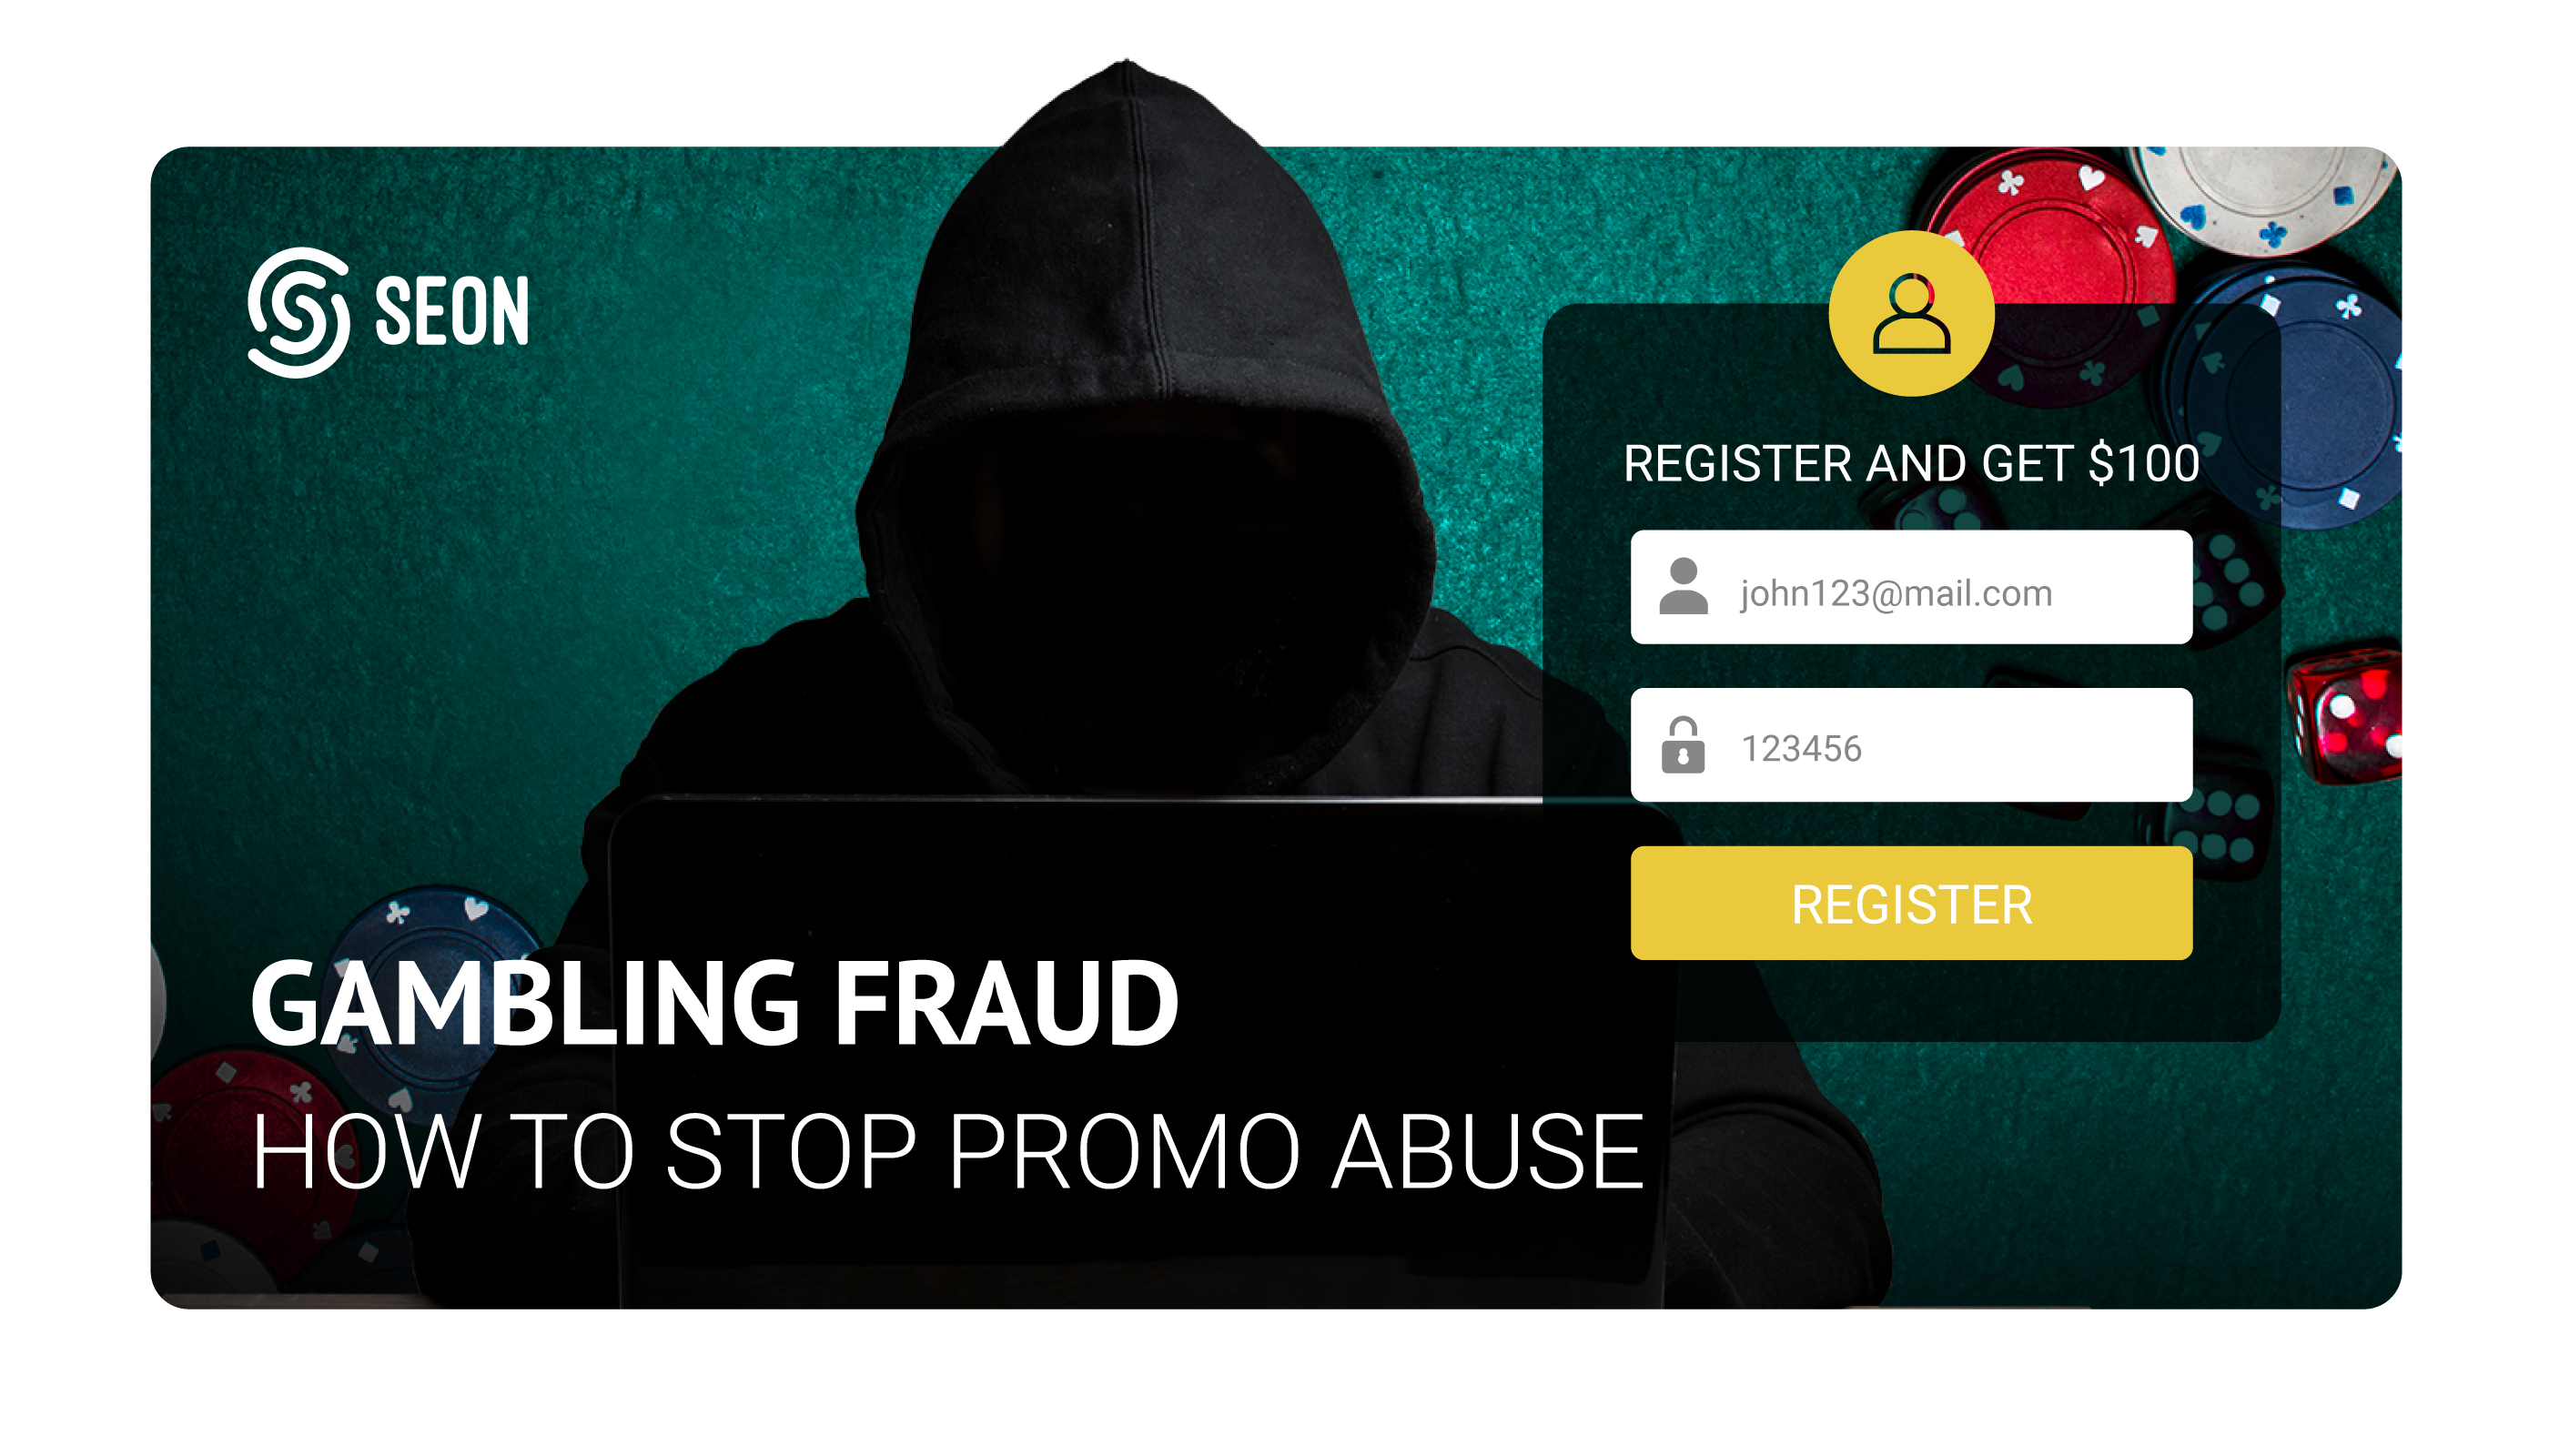 A Deeper Look at Gambling Fraud: Tackling Promo Abuse